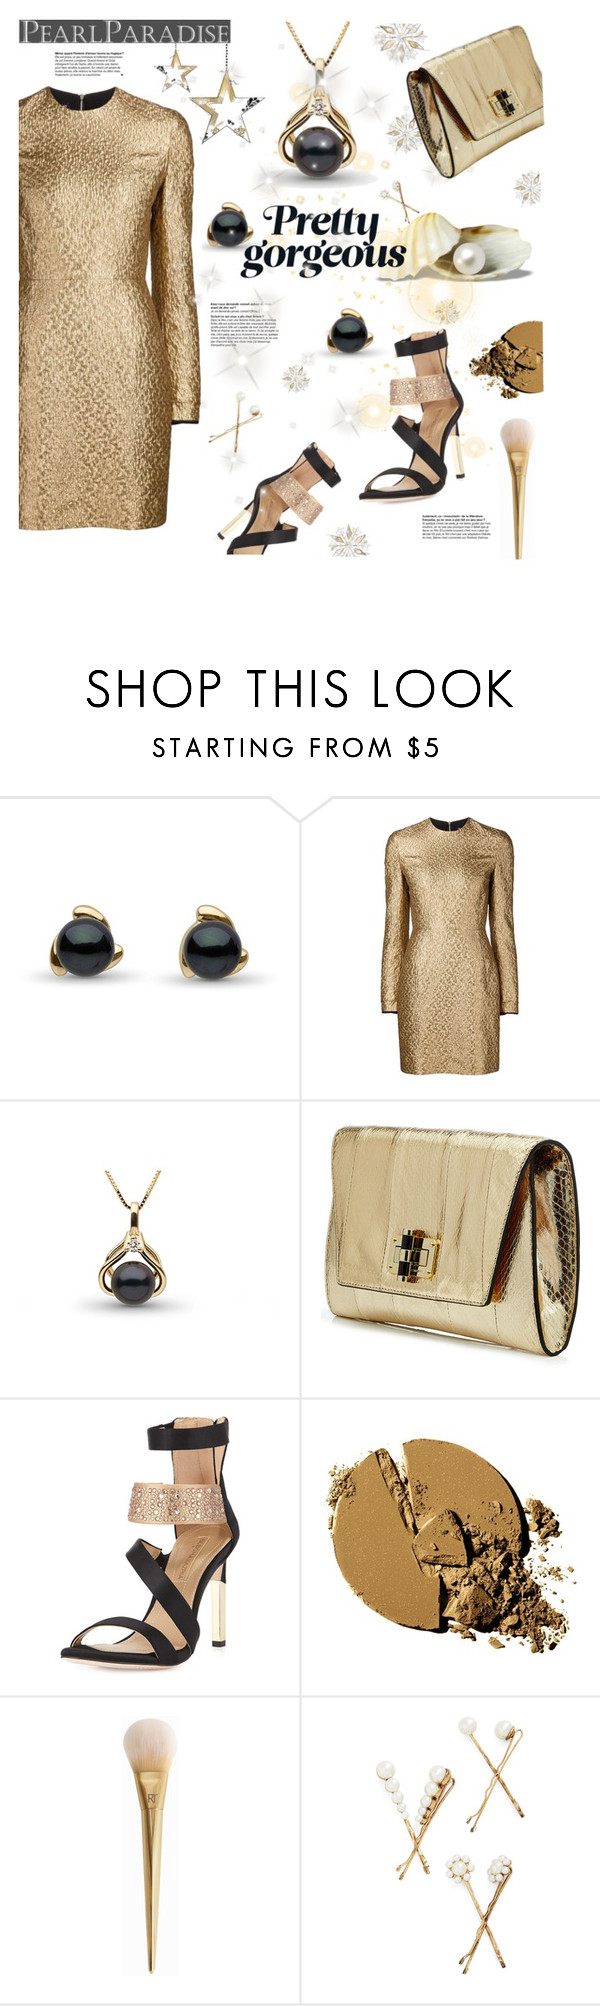 """""""Pretty Gorgeous"""" by einn-enna ❤ liked on Polyvore featuring Creatures Of The Wind, Diane Von Furstenberg, BCBGMAXAZRIA, pearljewelry and pearlparadise"""